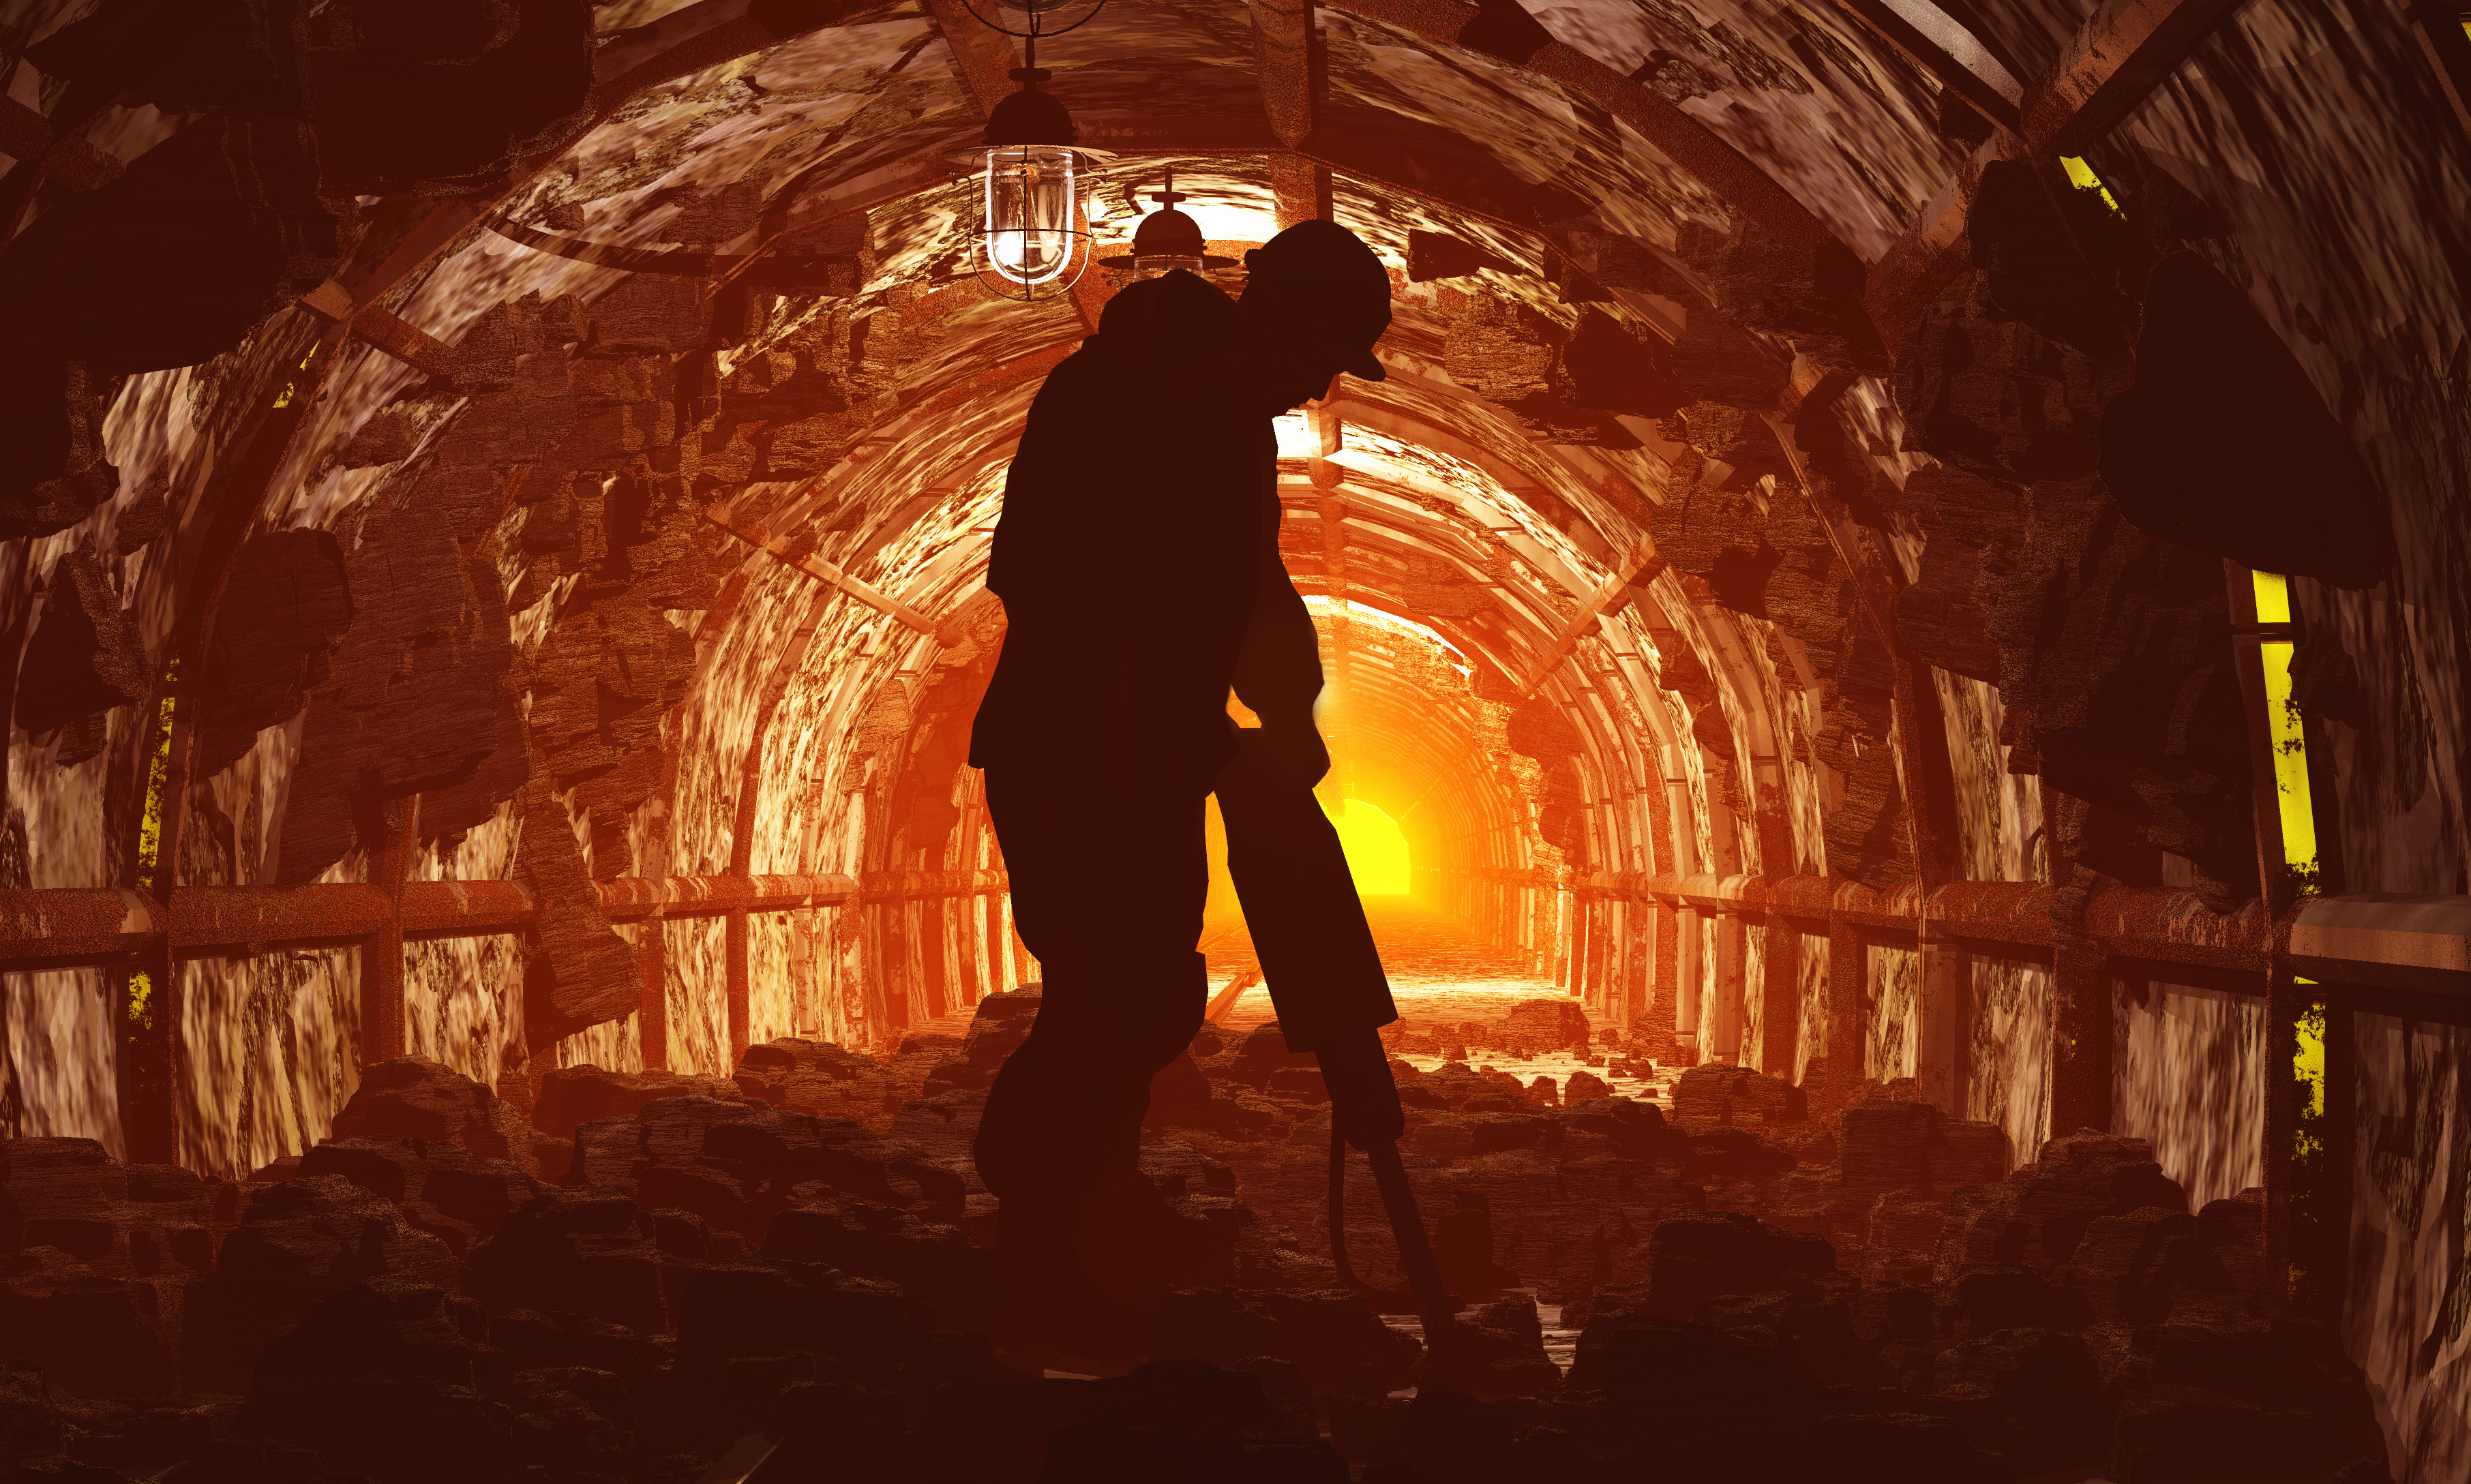 Coal Miner Shadow. Shutterstock